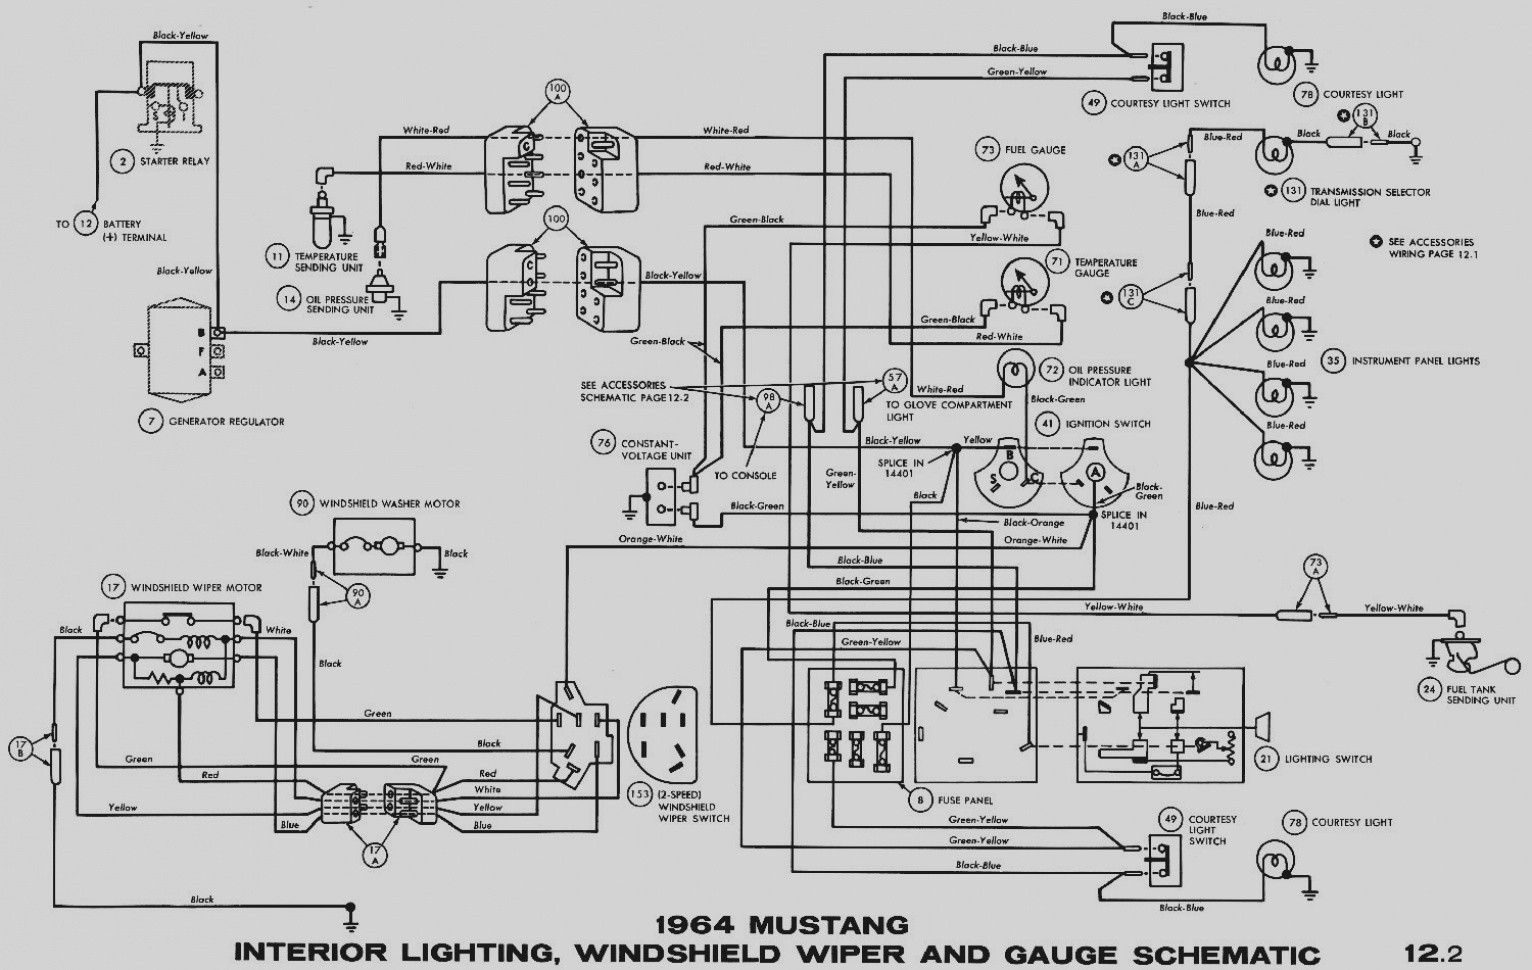 68 Mustang Headlight Wiring Diagram List Of Schematic Circuit Dash 1975 F100 Diagrams Auto Electrical Rh Sistemagroup Me Switch